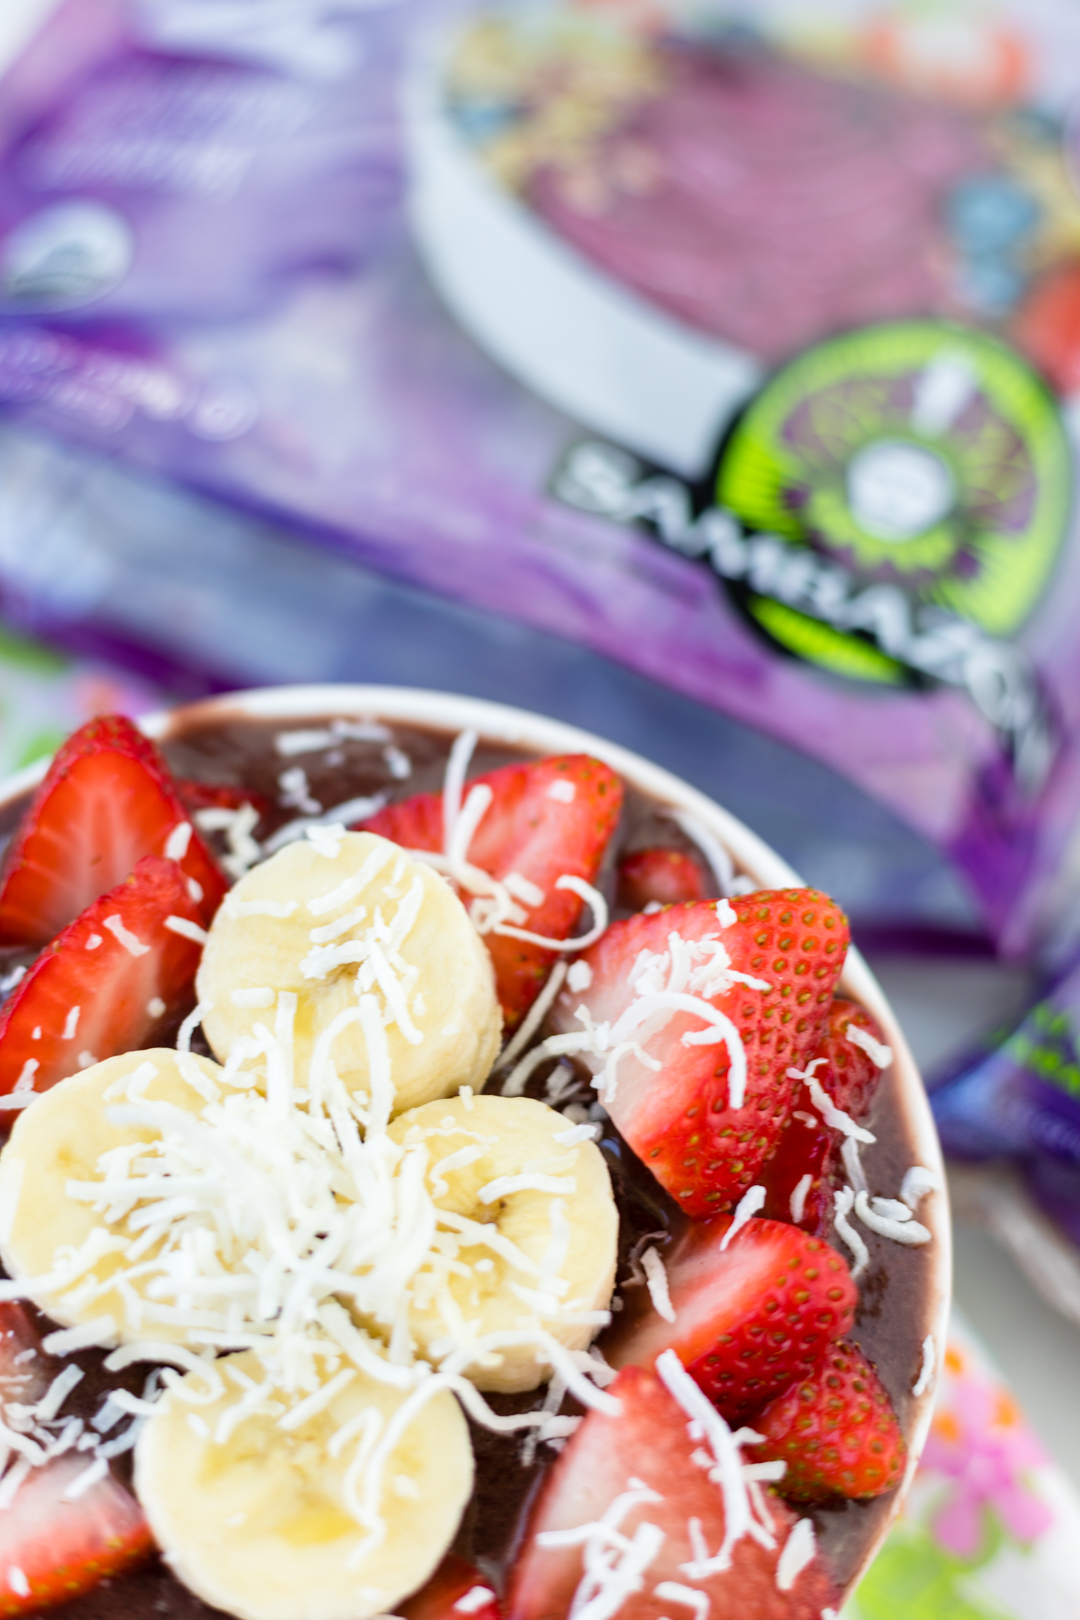 Learn how to quickly make Acai bowls at home the easy way!